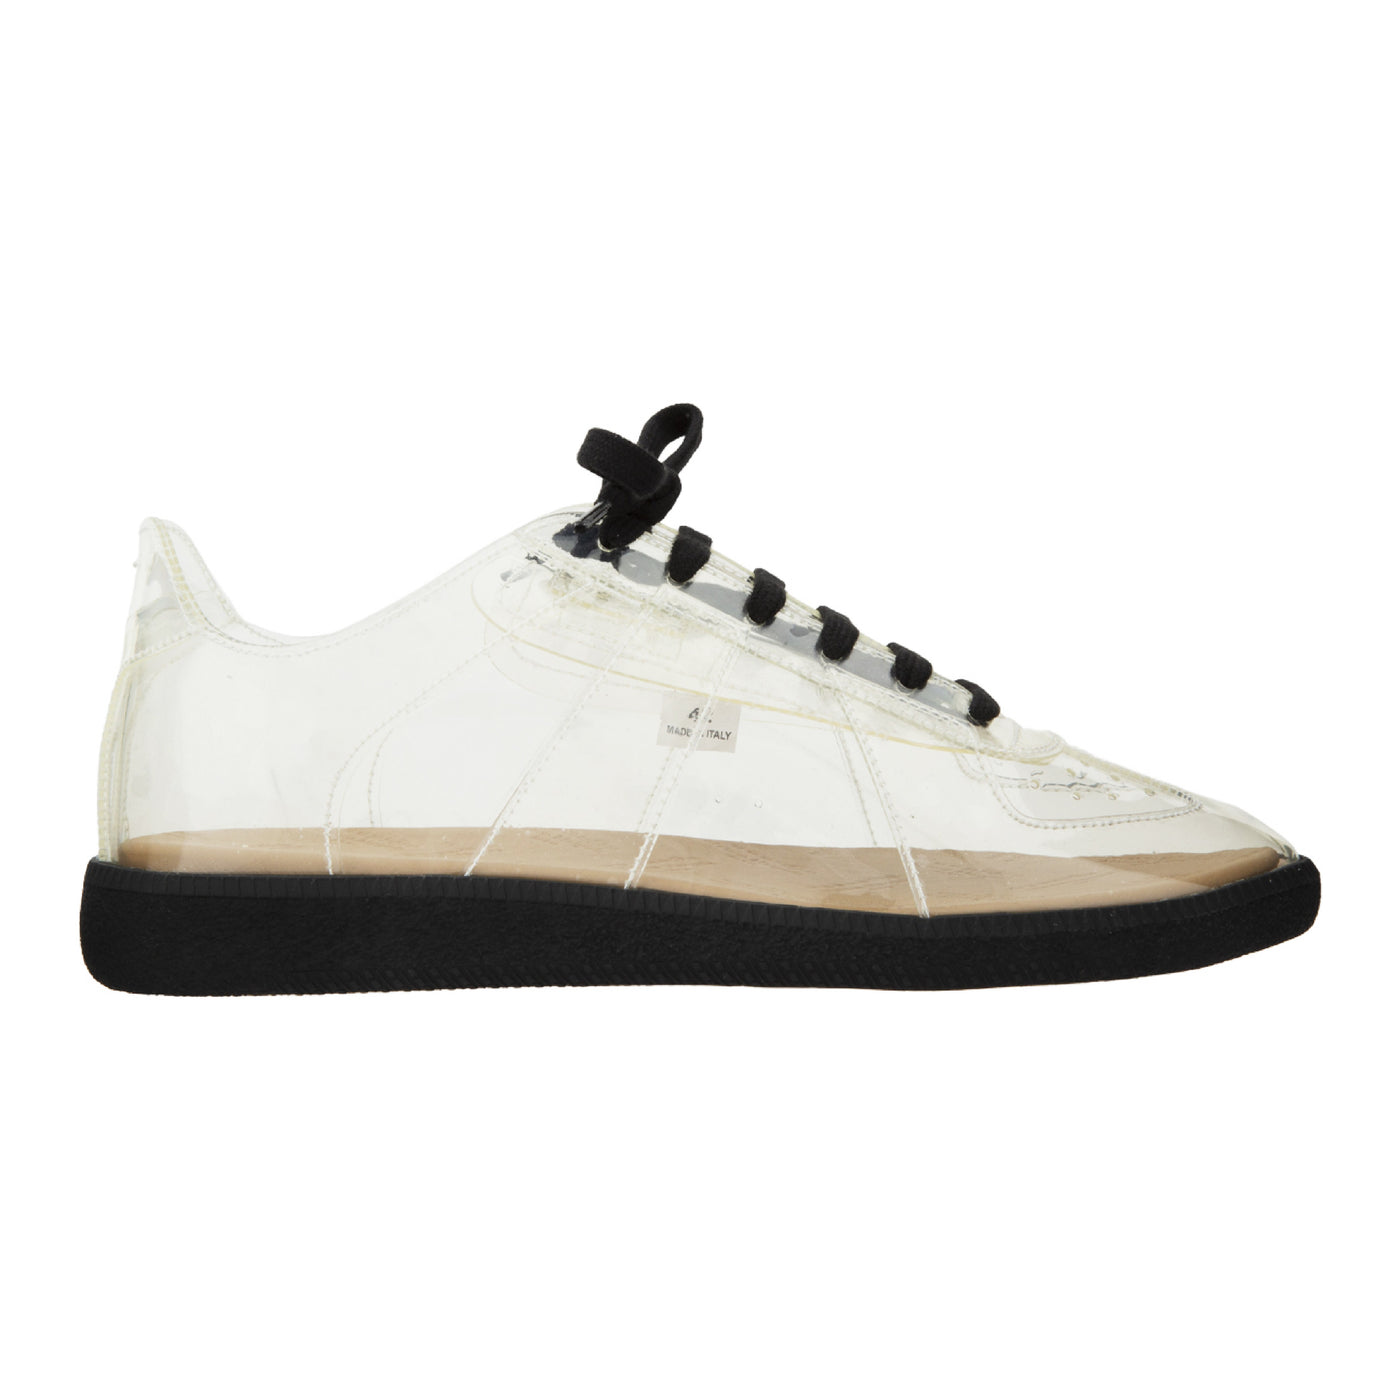 Load image into Gallery viewer, MAISON MARGIELA REPLICA SNEAKERS H8679 TRANSPARENT